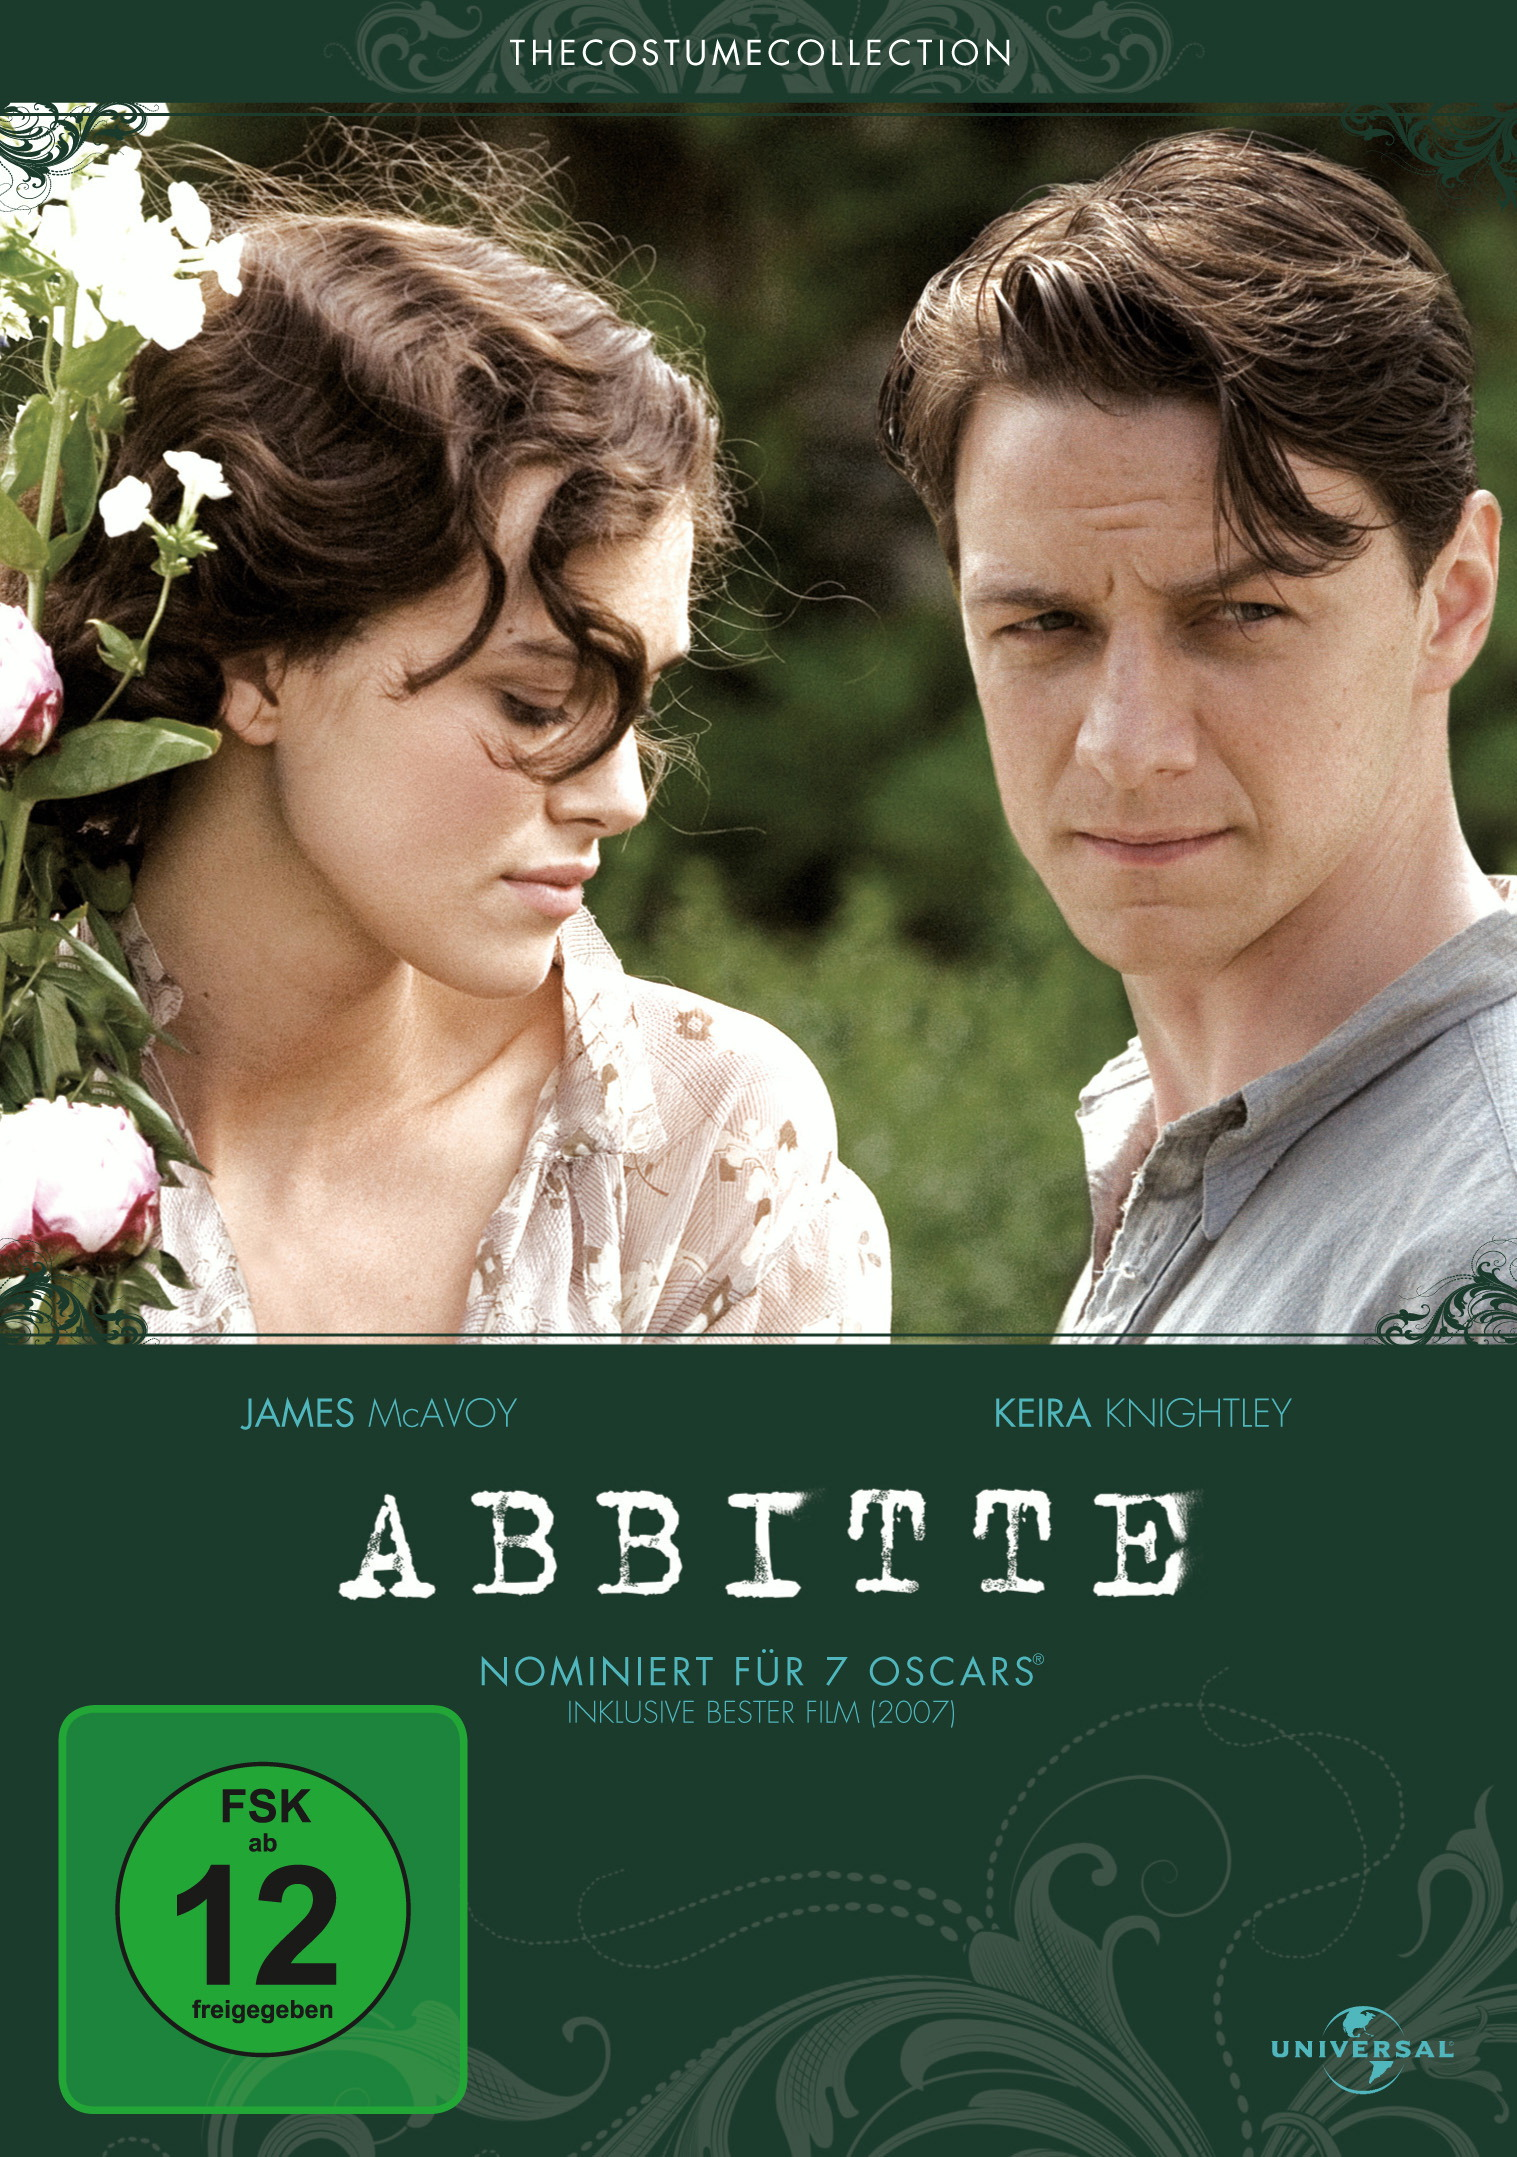 Abbitte (The Costume Collection) Poster